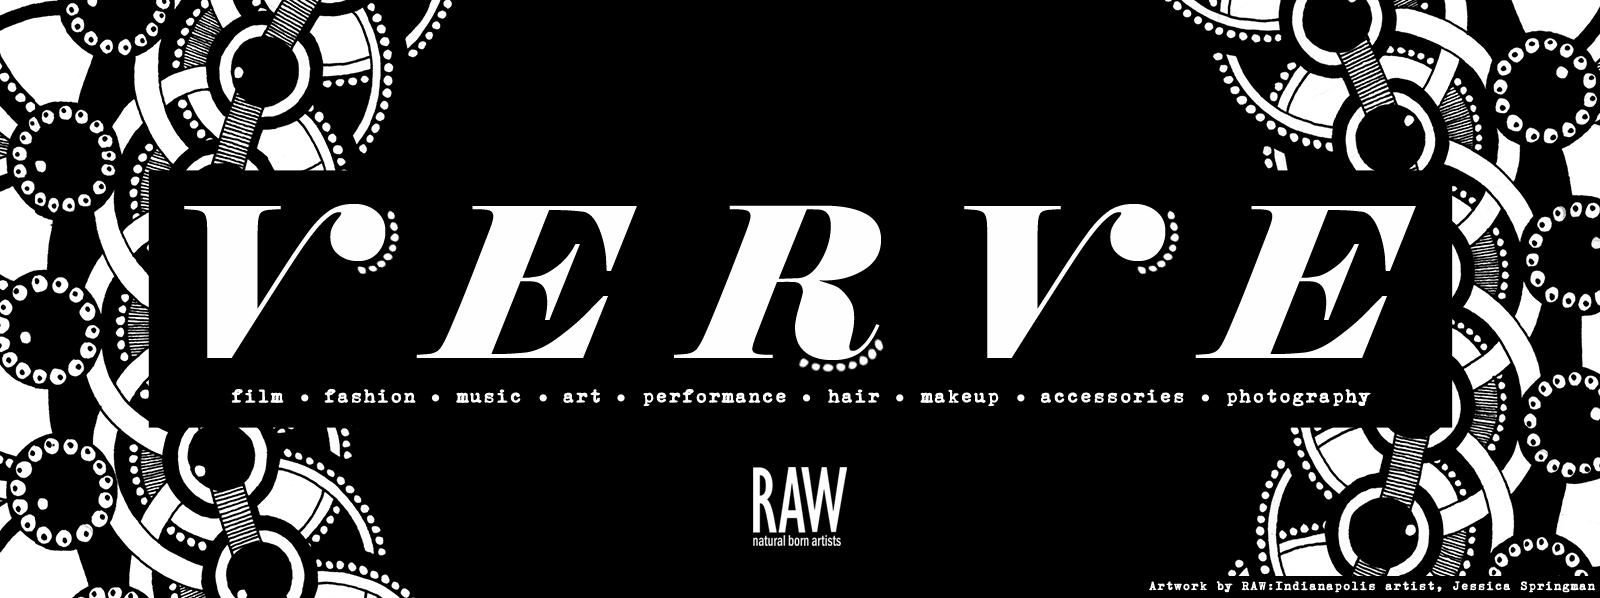 RAW:Milwaukee presents VERVE